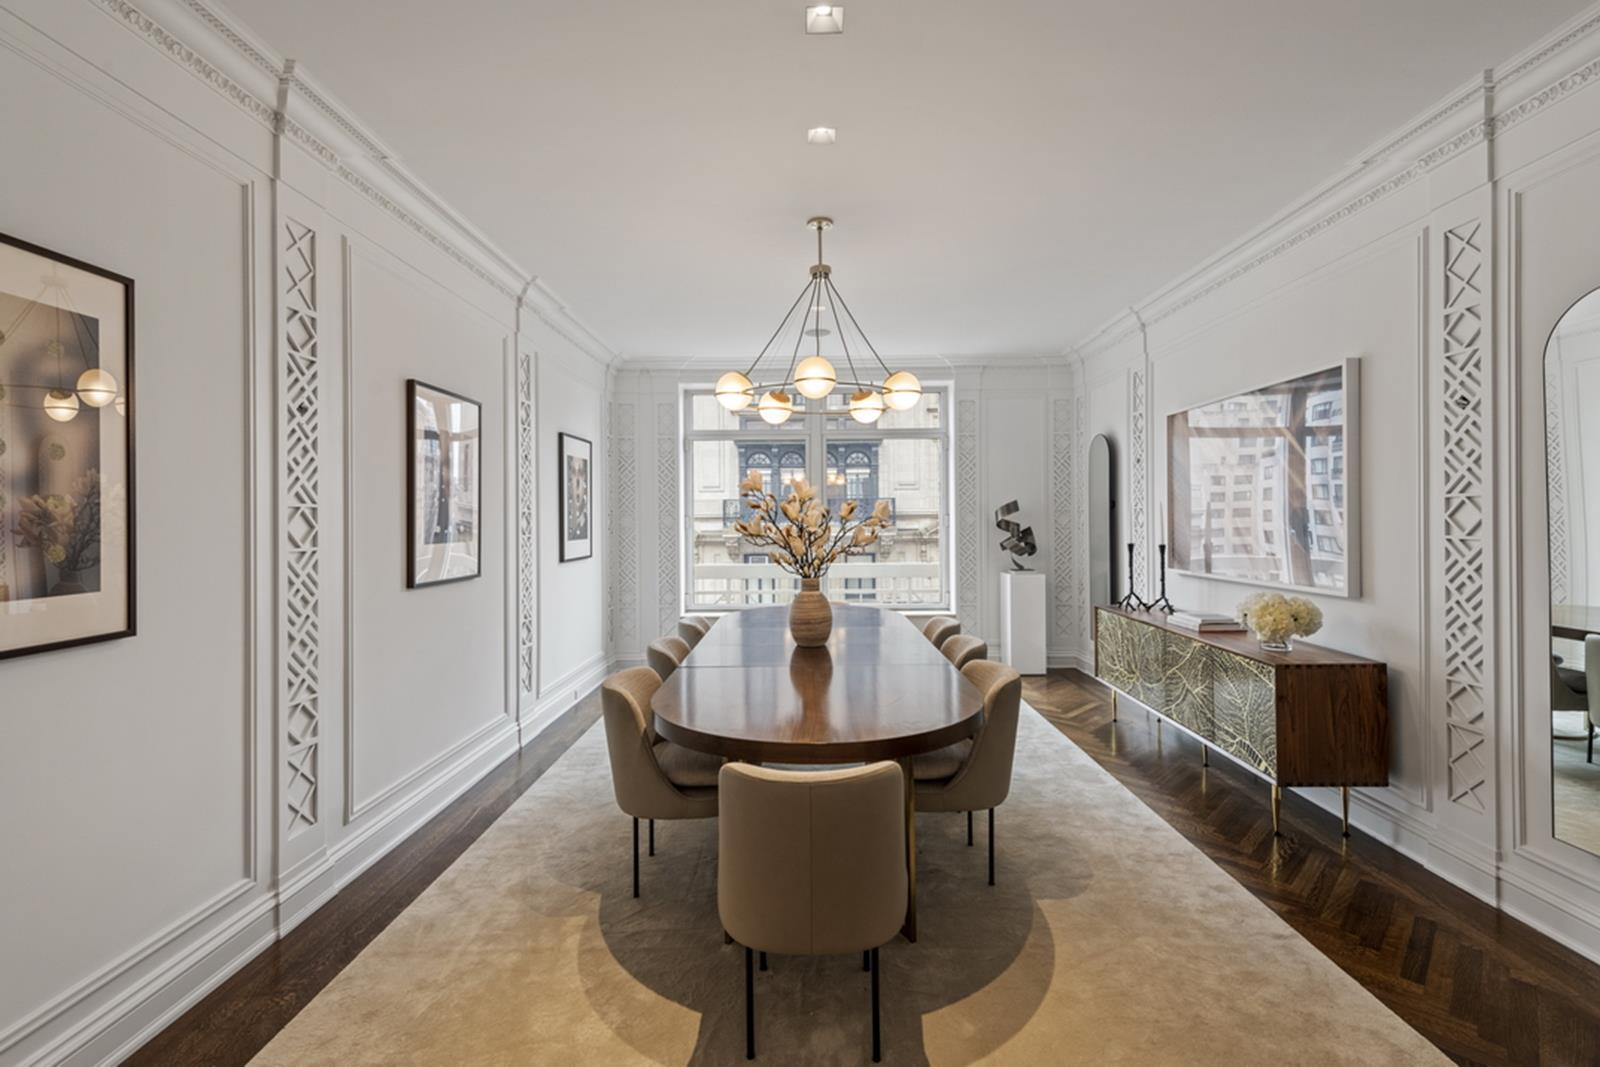 A palatial full floor condo overlooking Park Avenue, this Tony Ingrao-designed 6-bedroom, 6.5-bathroom home is a portrait of classic Manhattan luxury and style. Features of this 5,000 sq. ft. apartment include stunning herringbone hardwood floors, quadruple exposure, elegant crown molding, high ceilings,a private elevator landing with a massive storage room, central heating and cooling, an in-home laundry room, full staff quarters with a private bathroom and closet, and picturesque views of the surrounding neighborhood.Beyond a polished entryway gallery adorned with onyx and marble inlaid floors, the home flows into an expansive 20' by 30' living room that has North and West exposure. The large 14' by 27' formal dining room sits adjacent to the living room and has direct access to a huge eat-in kitchen that features dual exposure, a breakfast nook, a wet bar, pantry, a large central island, granite countertops, and a suite of high-end stainless steel appliances.The corner master bedroom sits on the Park Avenue side of the building and possesses two walls of gorgeous built-ins, a pair of gargantuan walk-in closets, and a windowed en-suite bathroom with marble walls and floors, his-and-hers sinks, a walk-in shower, and a separate soaking tub. Each of the remaining bedrooms have marble en-suite bathrooms and plenty of closet space. Additionally, one of the bedrooms boasts French mahogany paneling and is perfect for use as a library or office.515 Park Avenue is a luxury condominium located just two blocks from Central Park. The building is surrounded by upscale restaurants, bars, cafes, and shops, particularly those situated along Madison and 5th Avenues. Amenities include 24-hour concierge service, a meeting/entertaining room with an attached catering kitchen, storage, wine cellar and a fully-equipped fitness center. Pets are welcome and a large storage bin transfers with the Apartment.Transfer fee of 2% paid by buyer.